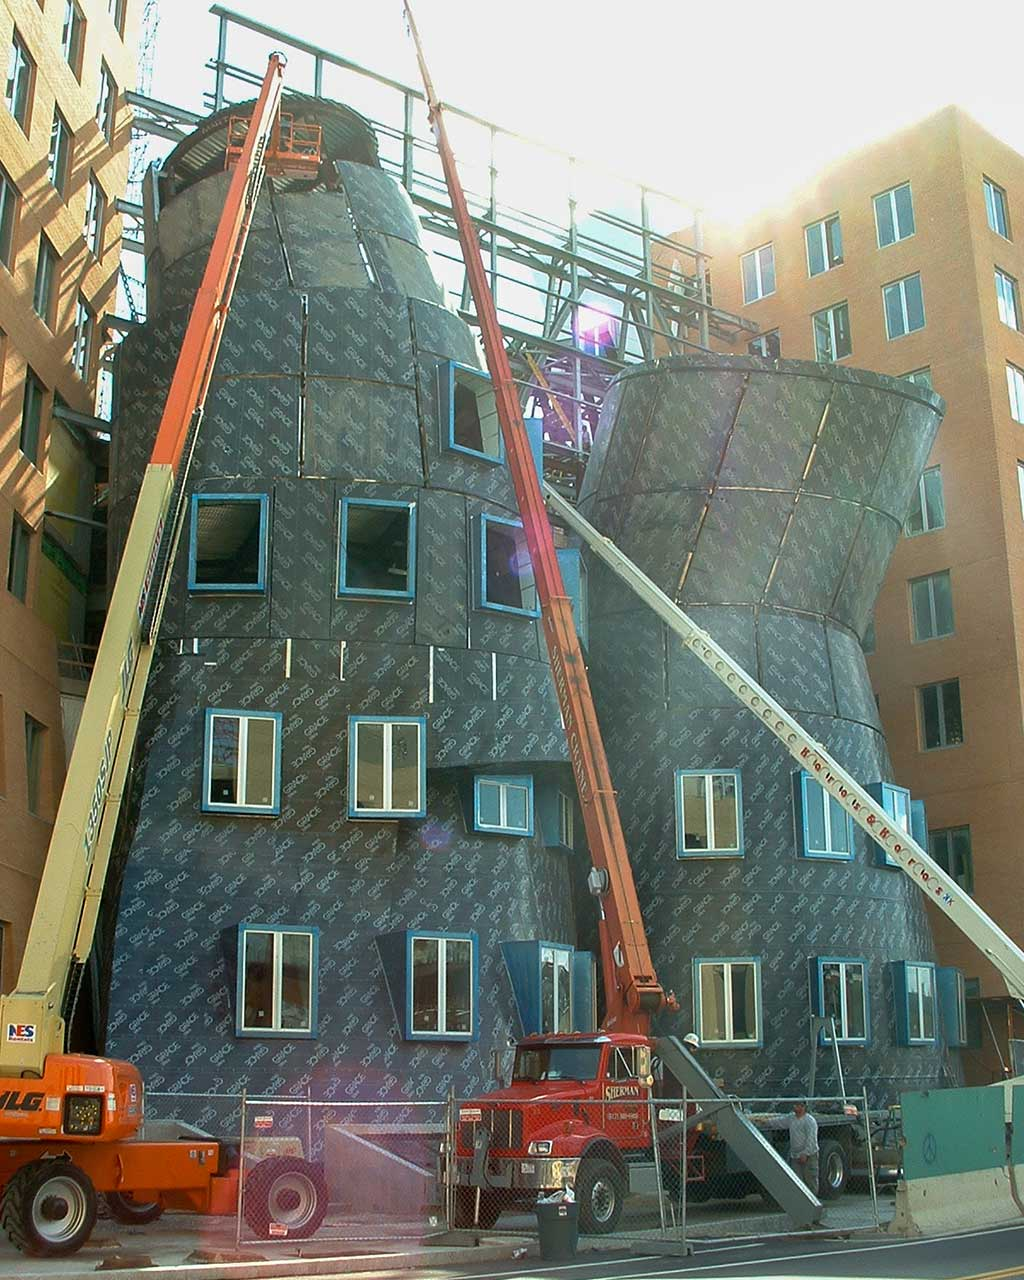 Twins building during construction revealing the ZEPPS panel understructure.